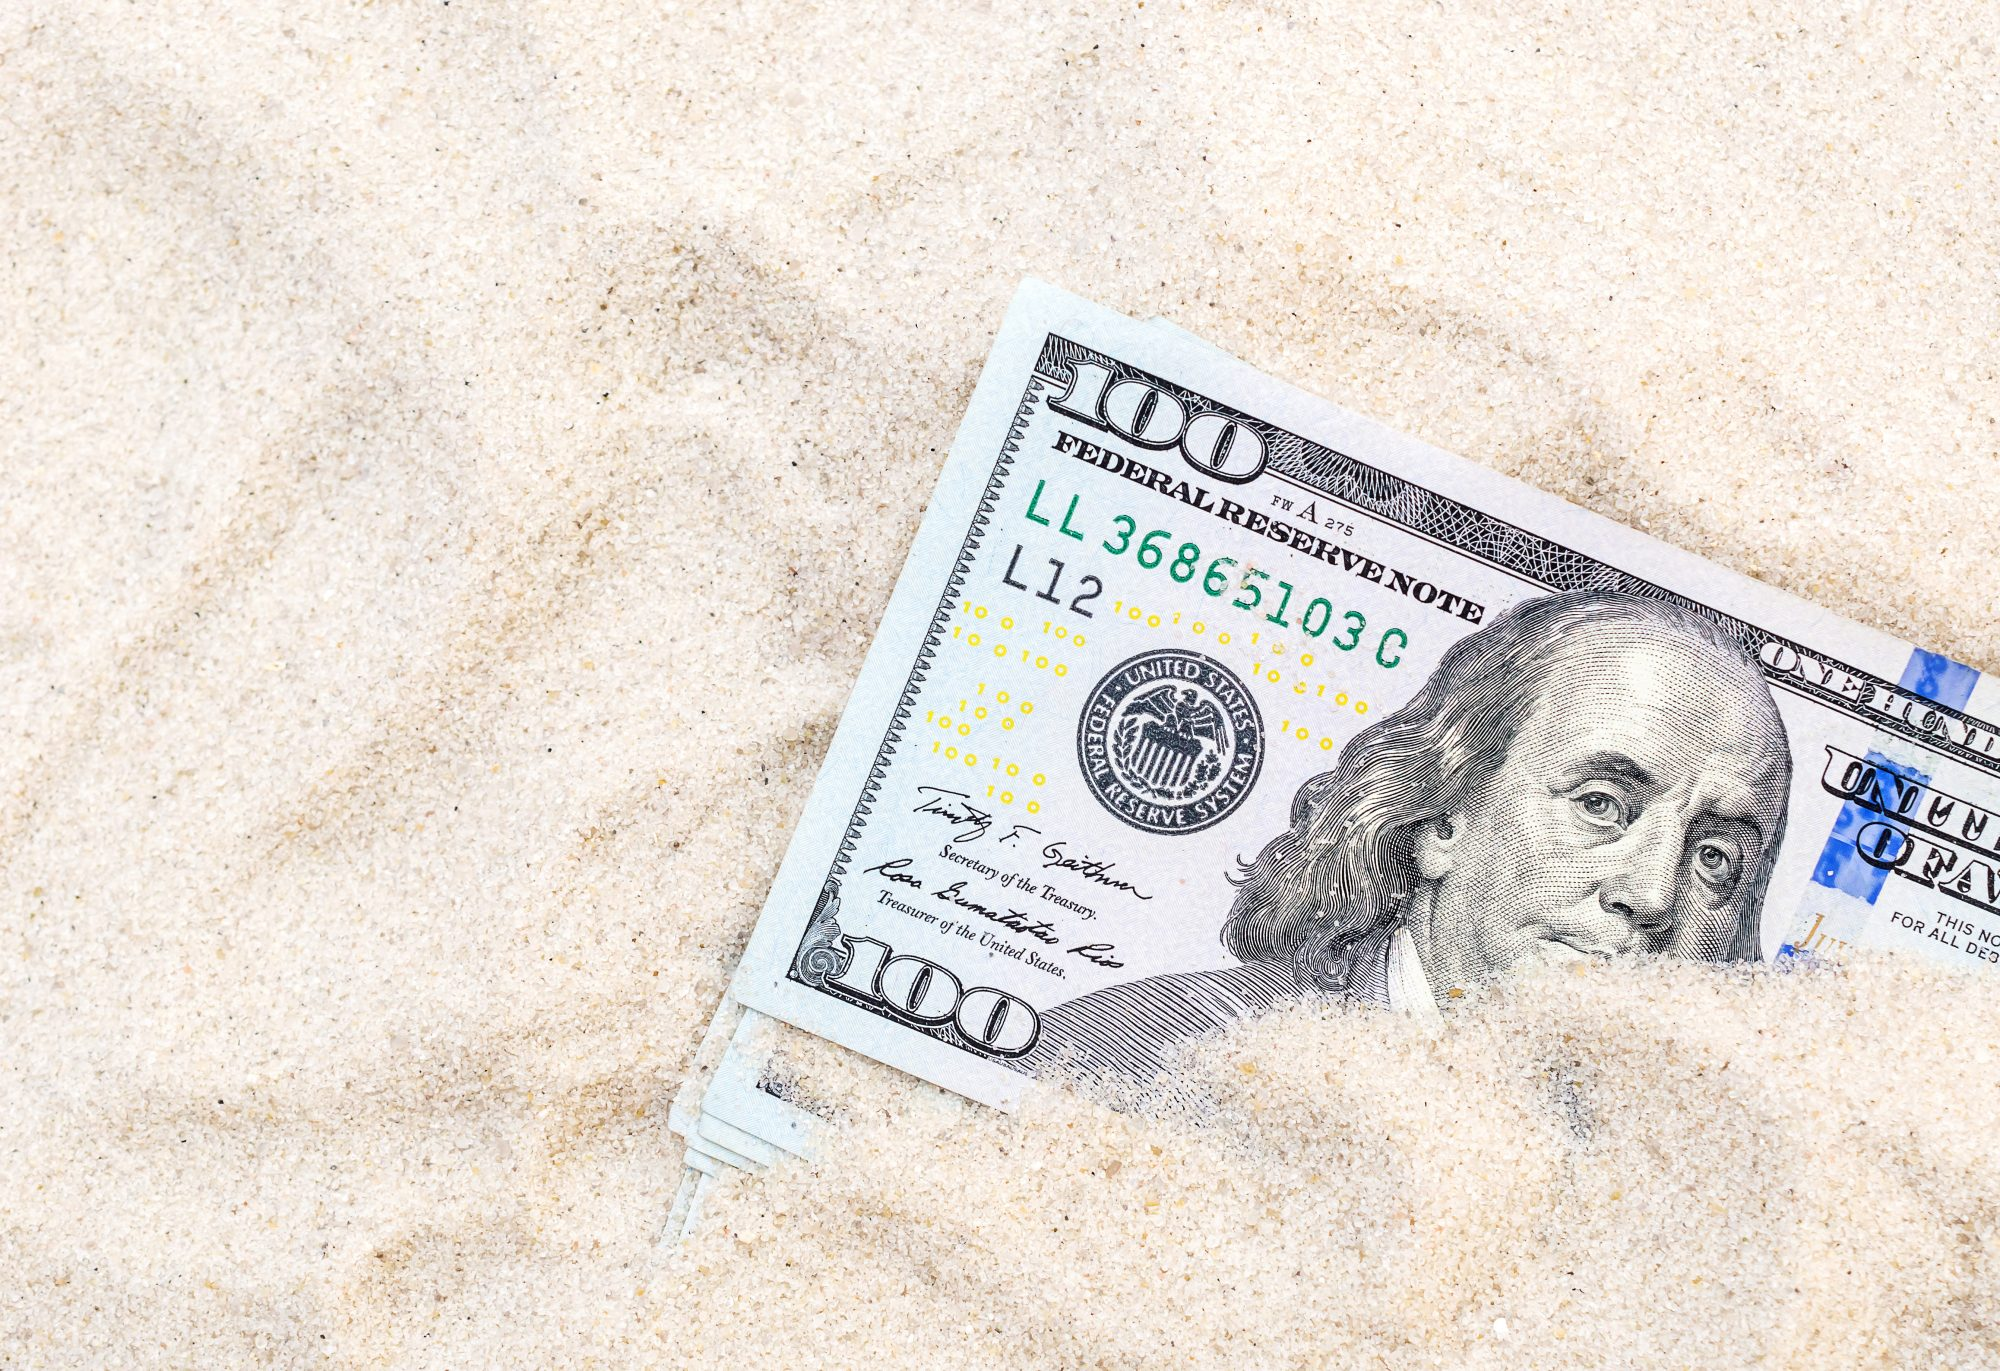 save-money-vacation: cash in the sand